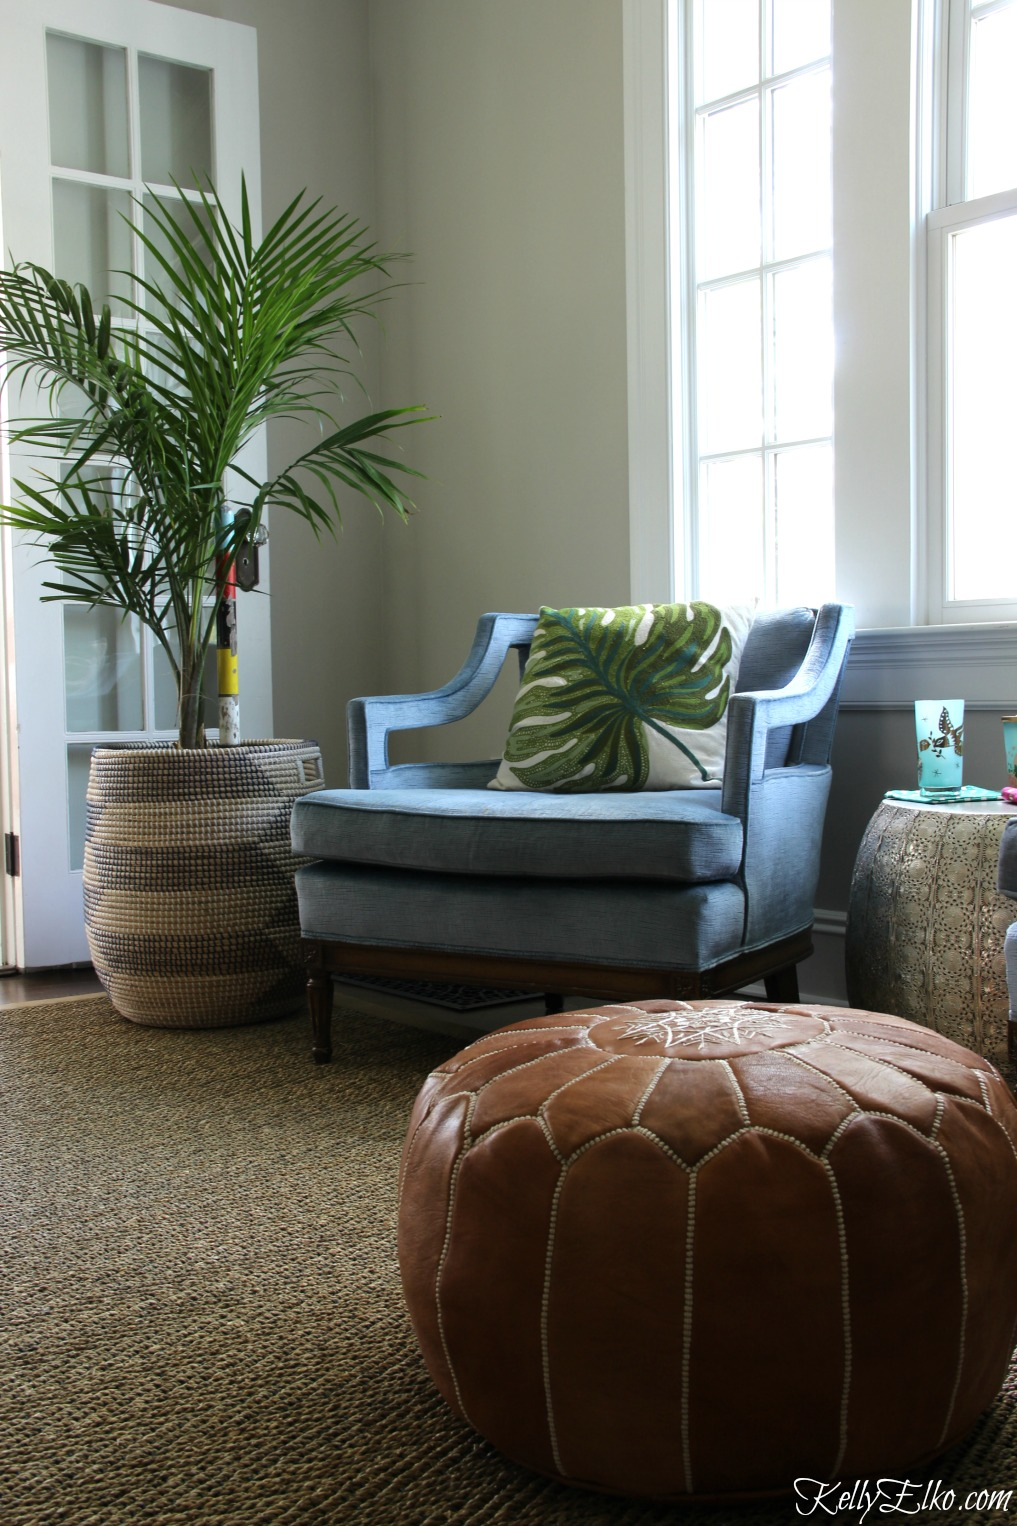 Love the palm tree in a basket paired with club chairs and a leather pouf kellyelko.com